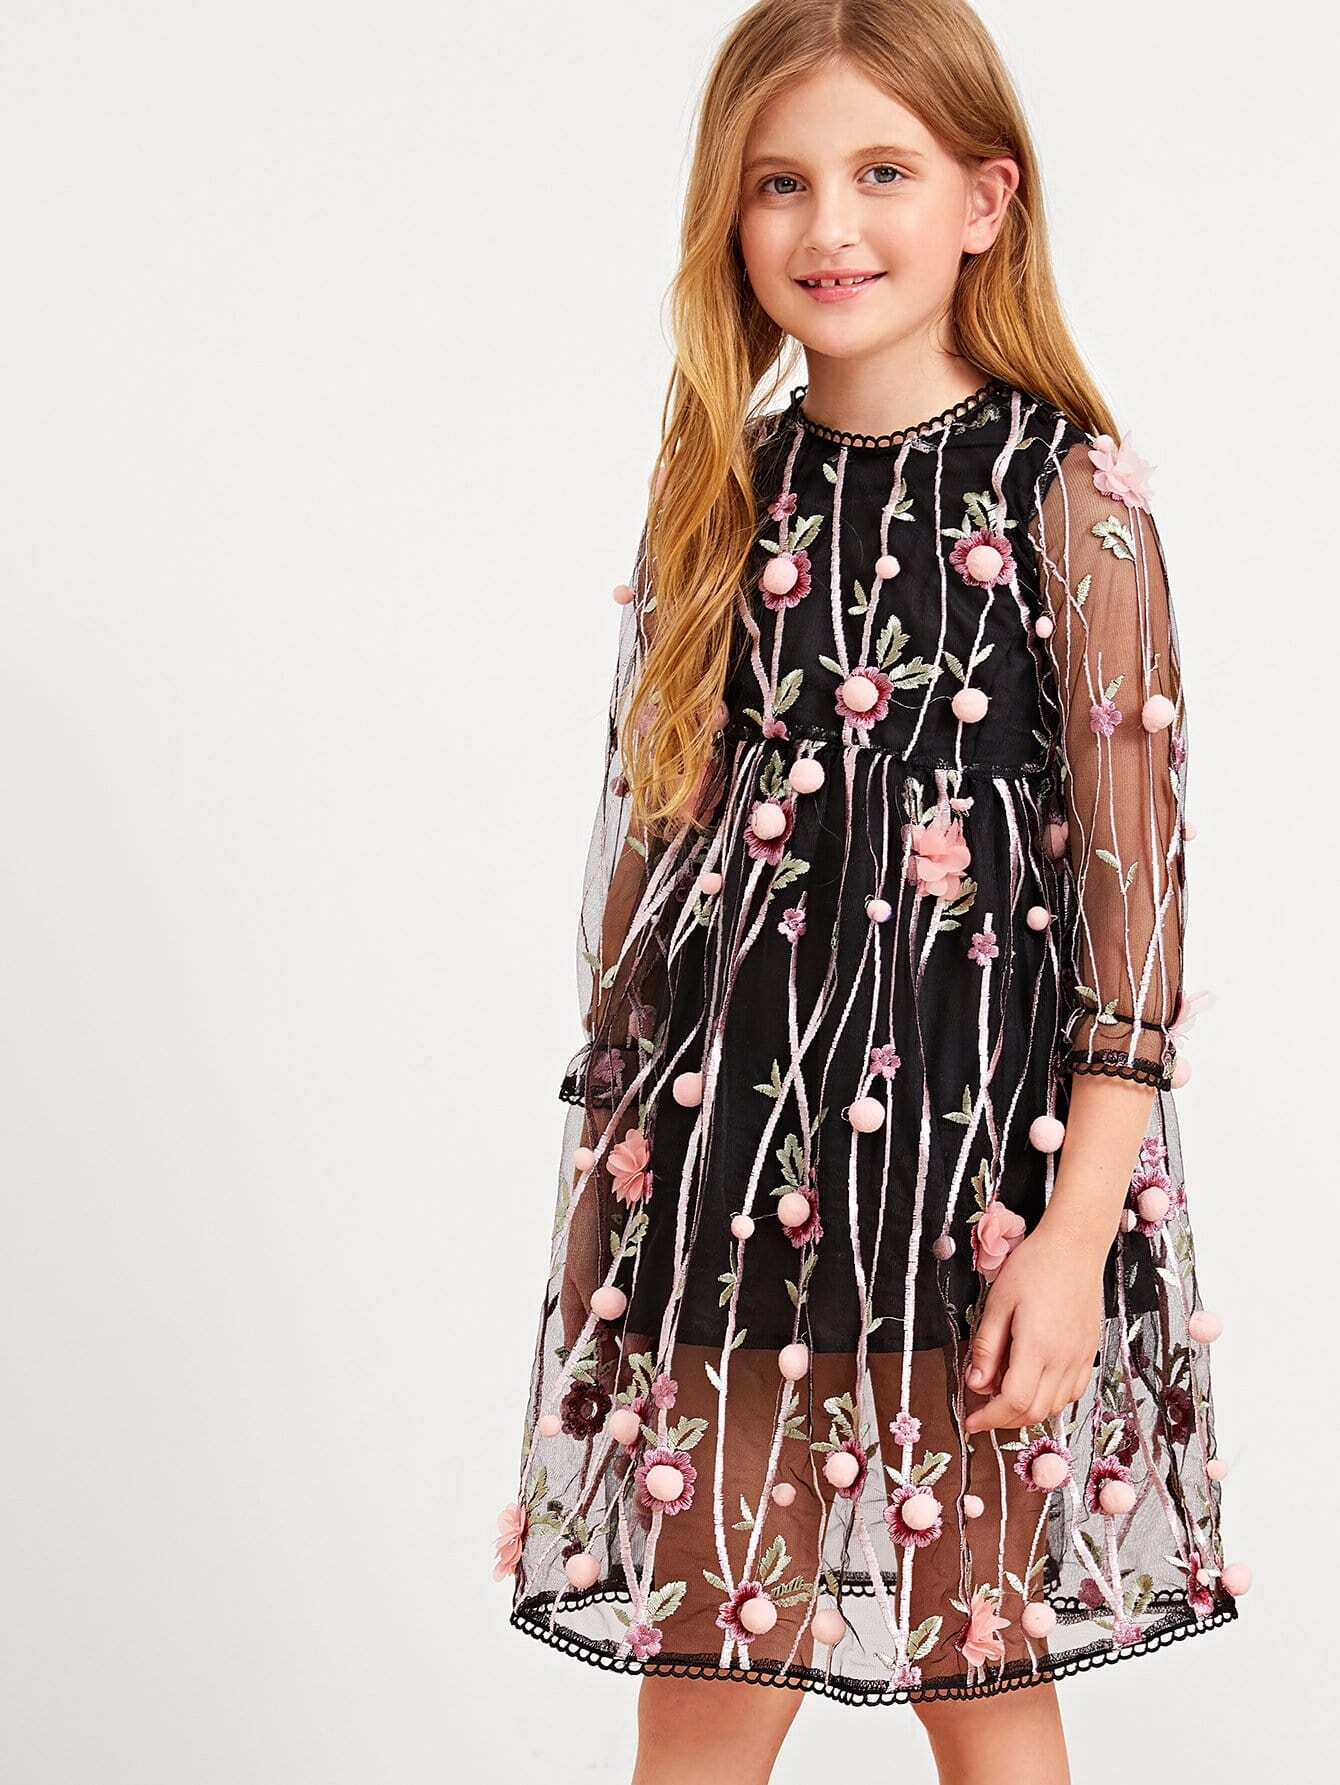 767d0175a0c2 Cheap Girls Floral Embroidered Mesh Overlay Pom Pom Dress for sale  Australia   SHEIN